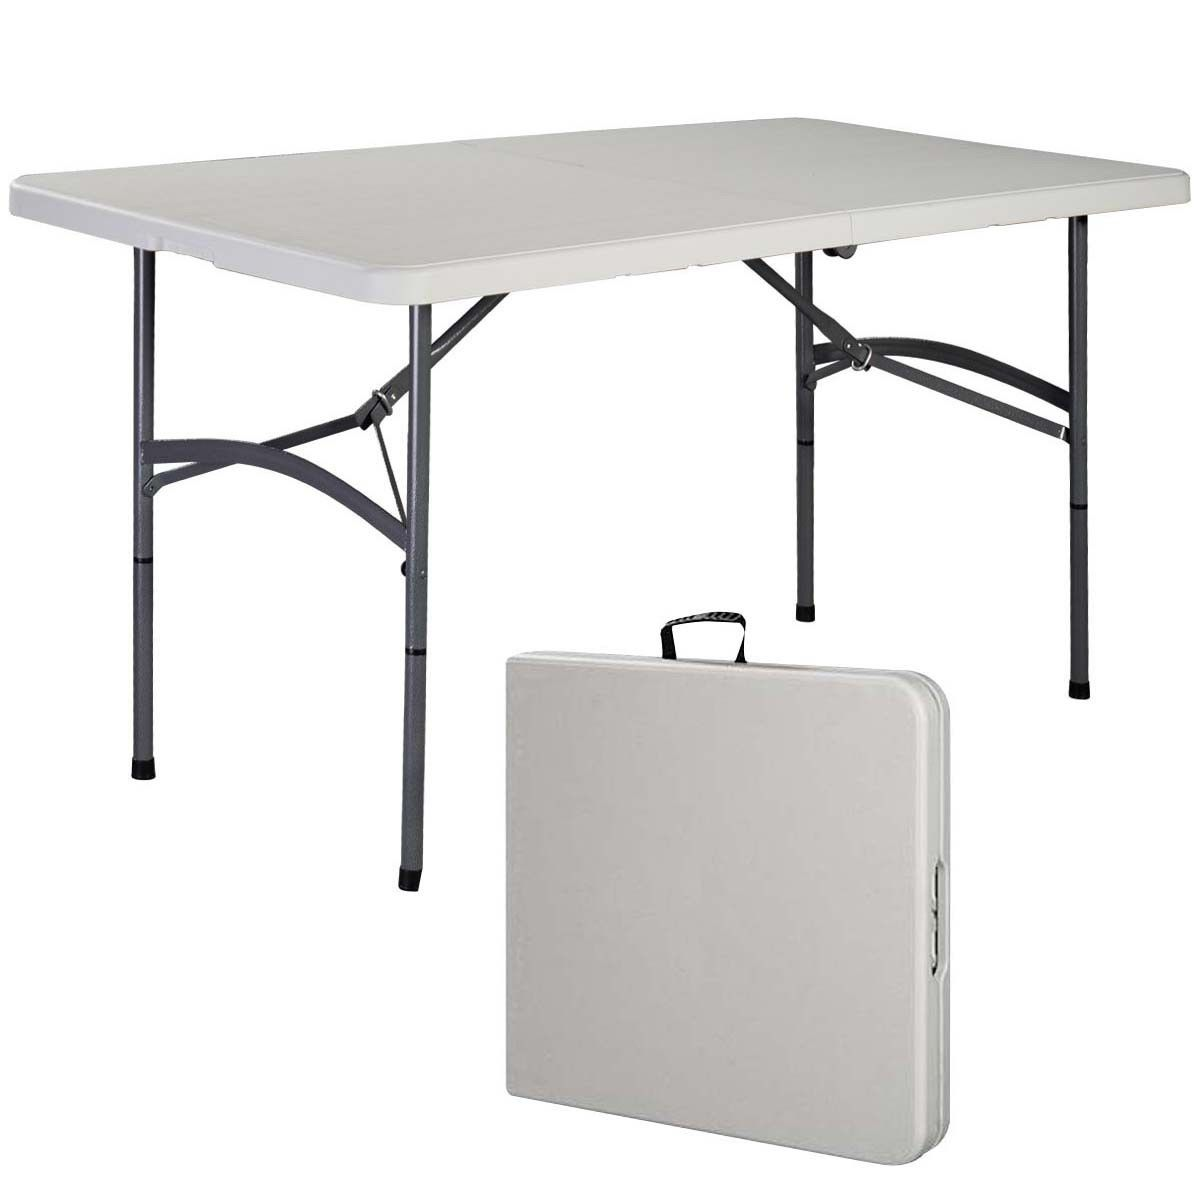 Costway 5' Folding Table Portable Plastic Indoor Outdoor Picnic Party Dining Camp Tables by Costway